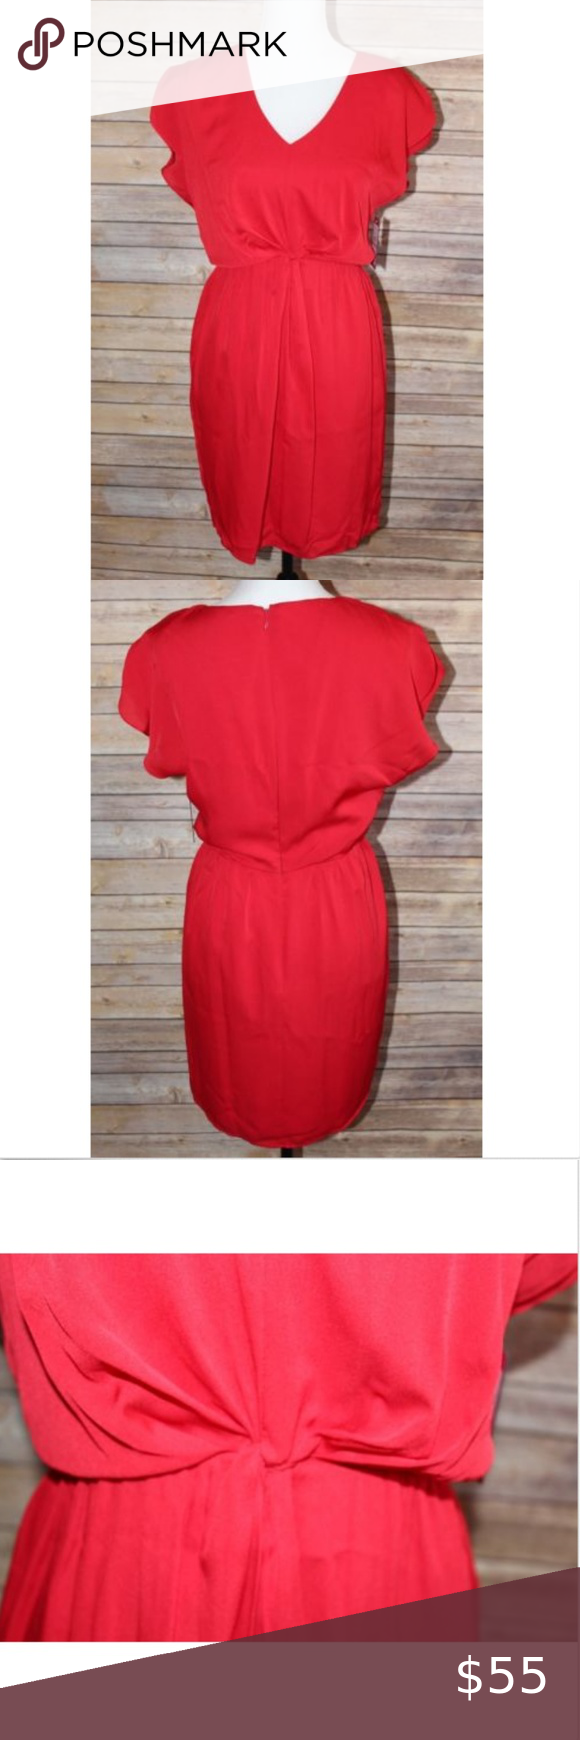 Vince Camuto Dress Red Holiday Dress Red Holiday Dress Clothes Design Vince Camuto Dress [ 1740 x 580 Pixel ]